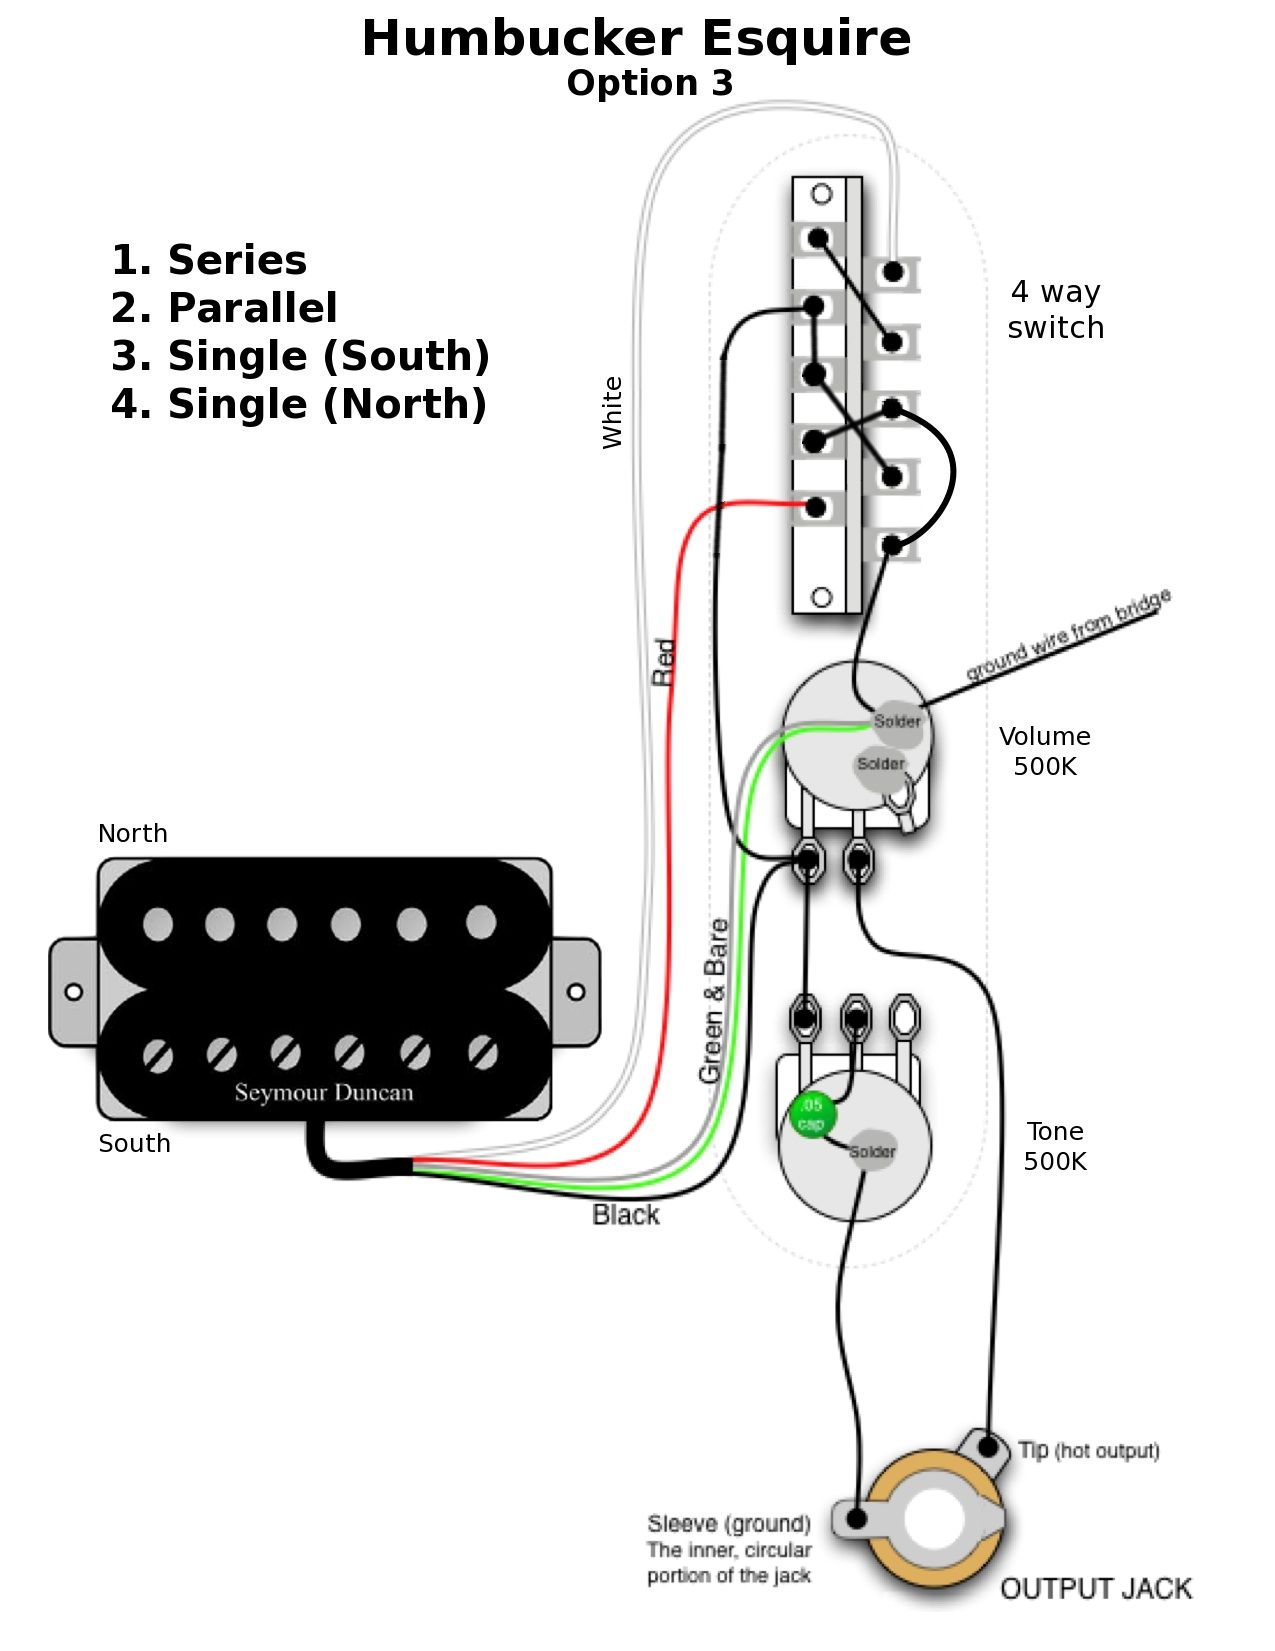 z243s esquire_hb_option_3 switchable tele esquire wiring [archive] pit bull guitar forums esquire wiring diagram humbucker at cos-gaming.co